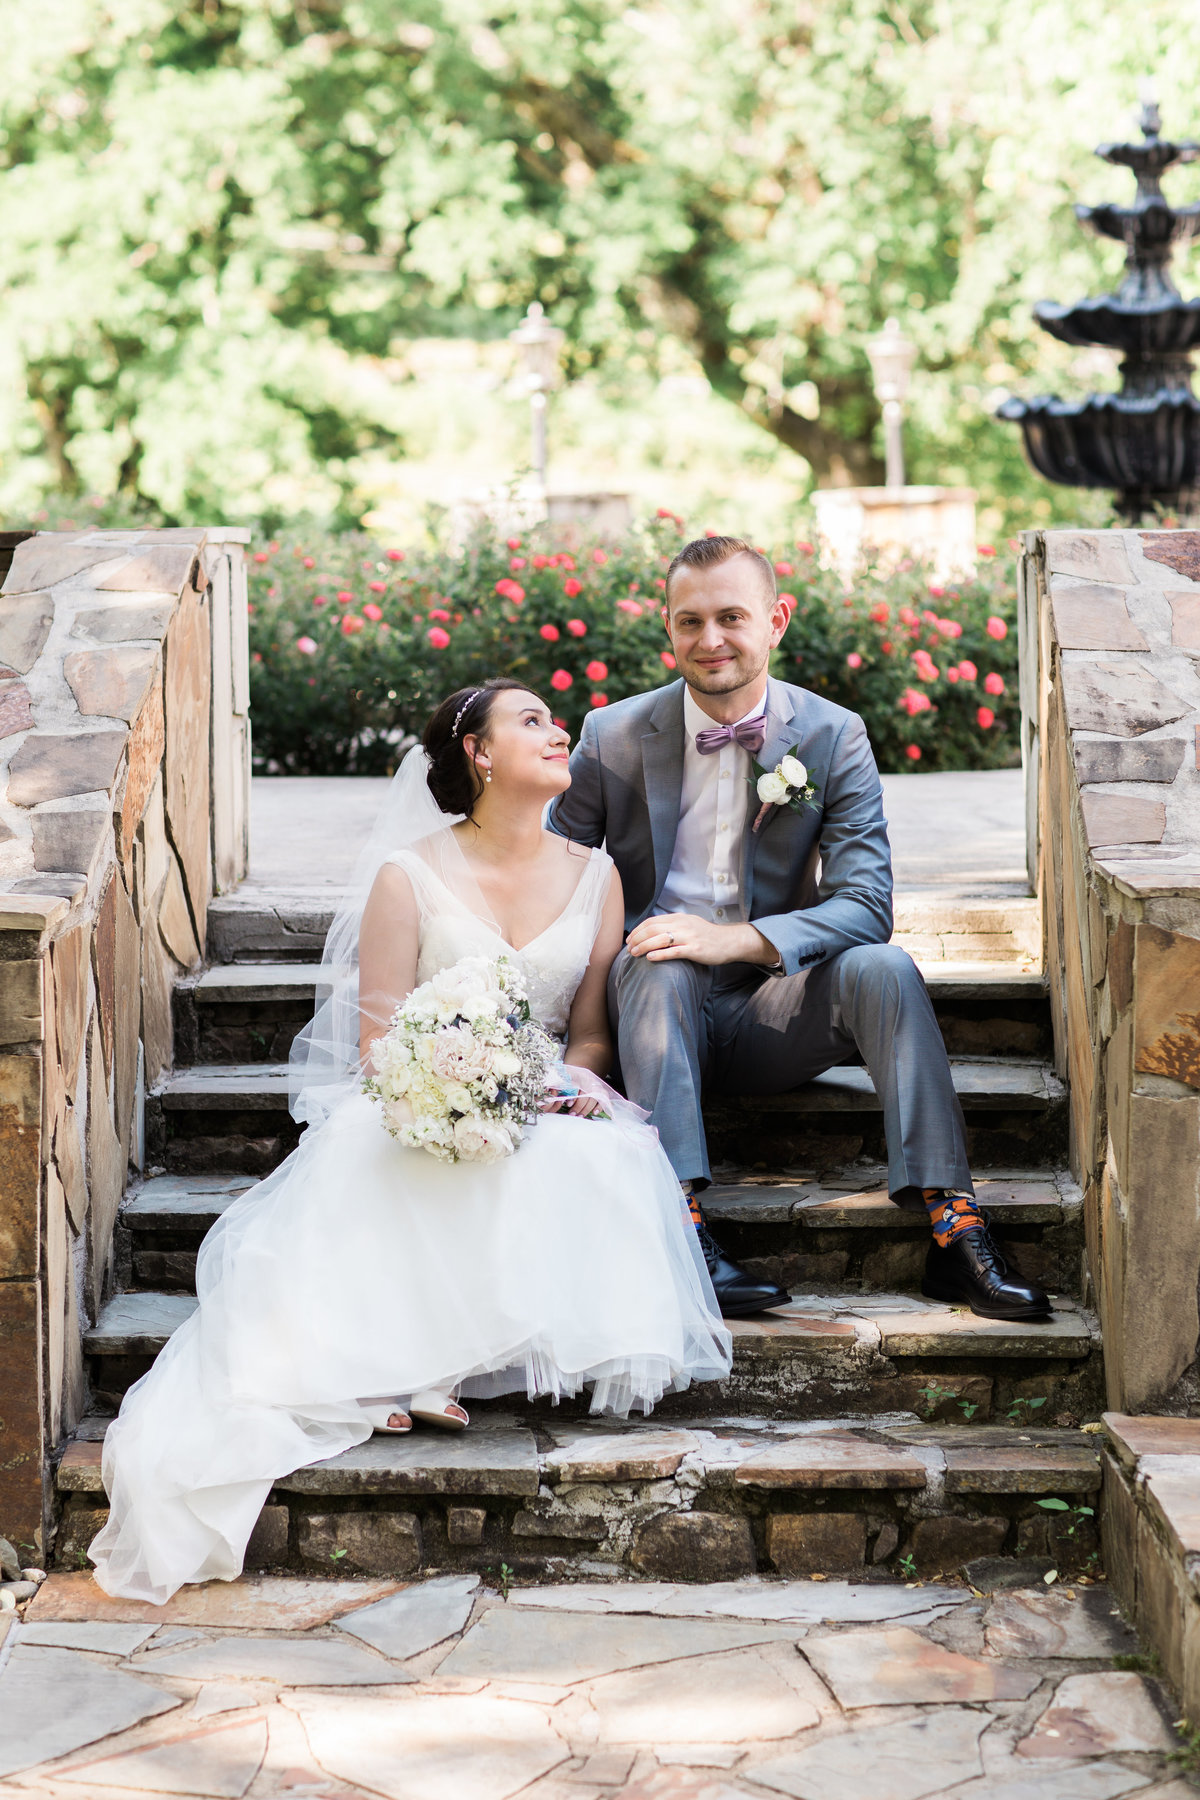 Danielle-Defayette-Photography-Daras-Garden-Knoxville-Wedding-315